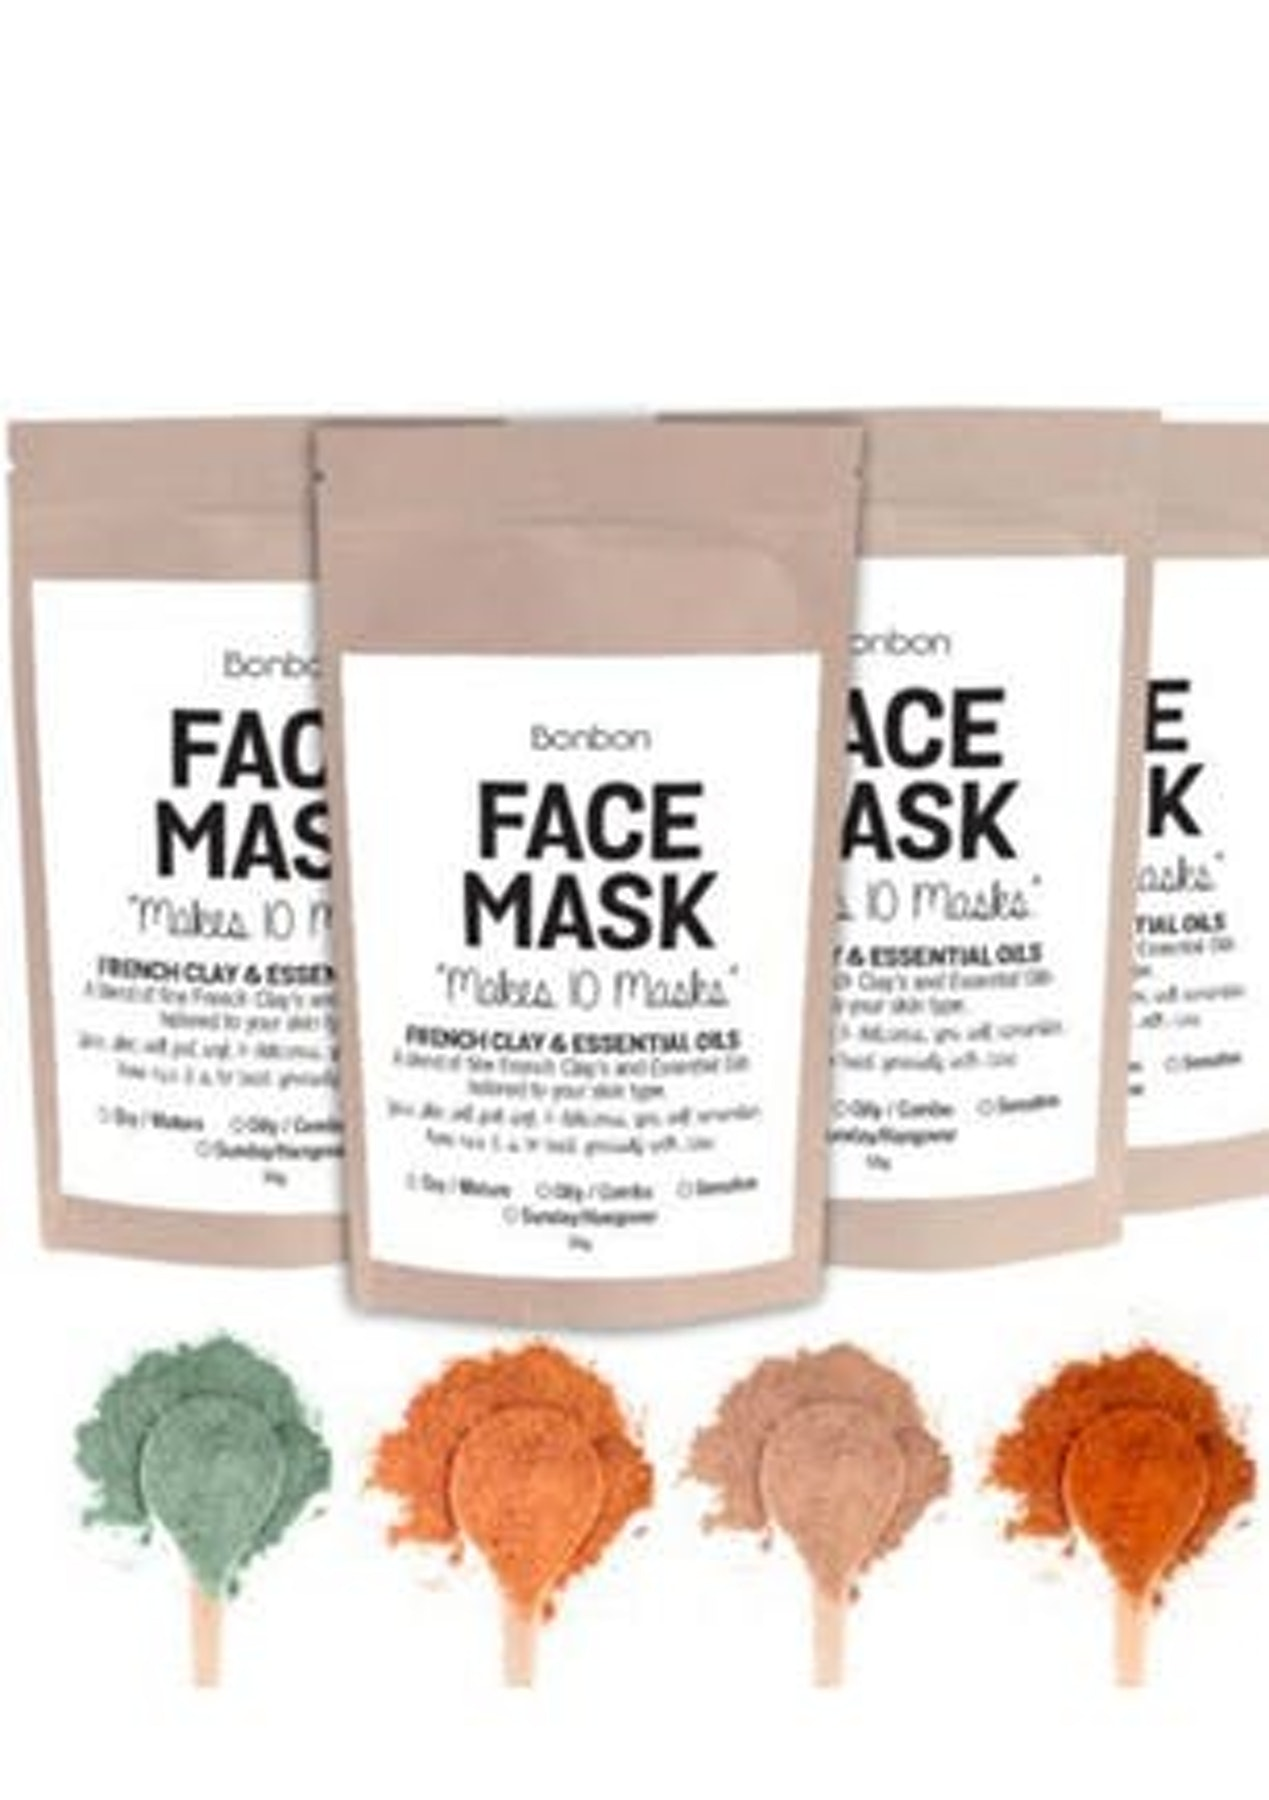 Bonbon Vegan French Clay Face Mask Oily Combination And Acne Skin Acnes Tea Tree Oil 50g Restock Onceit